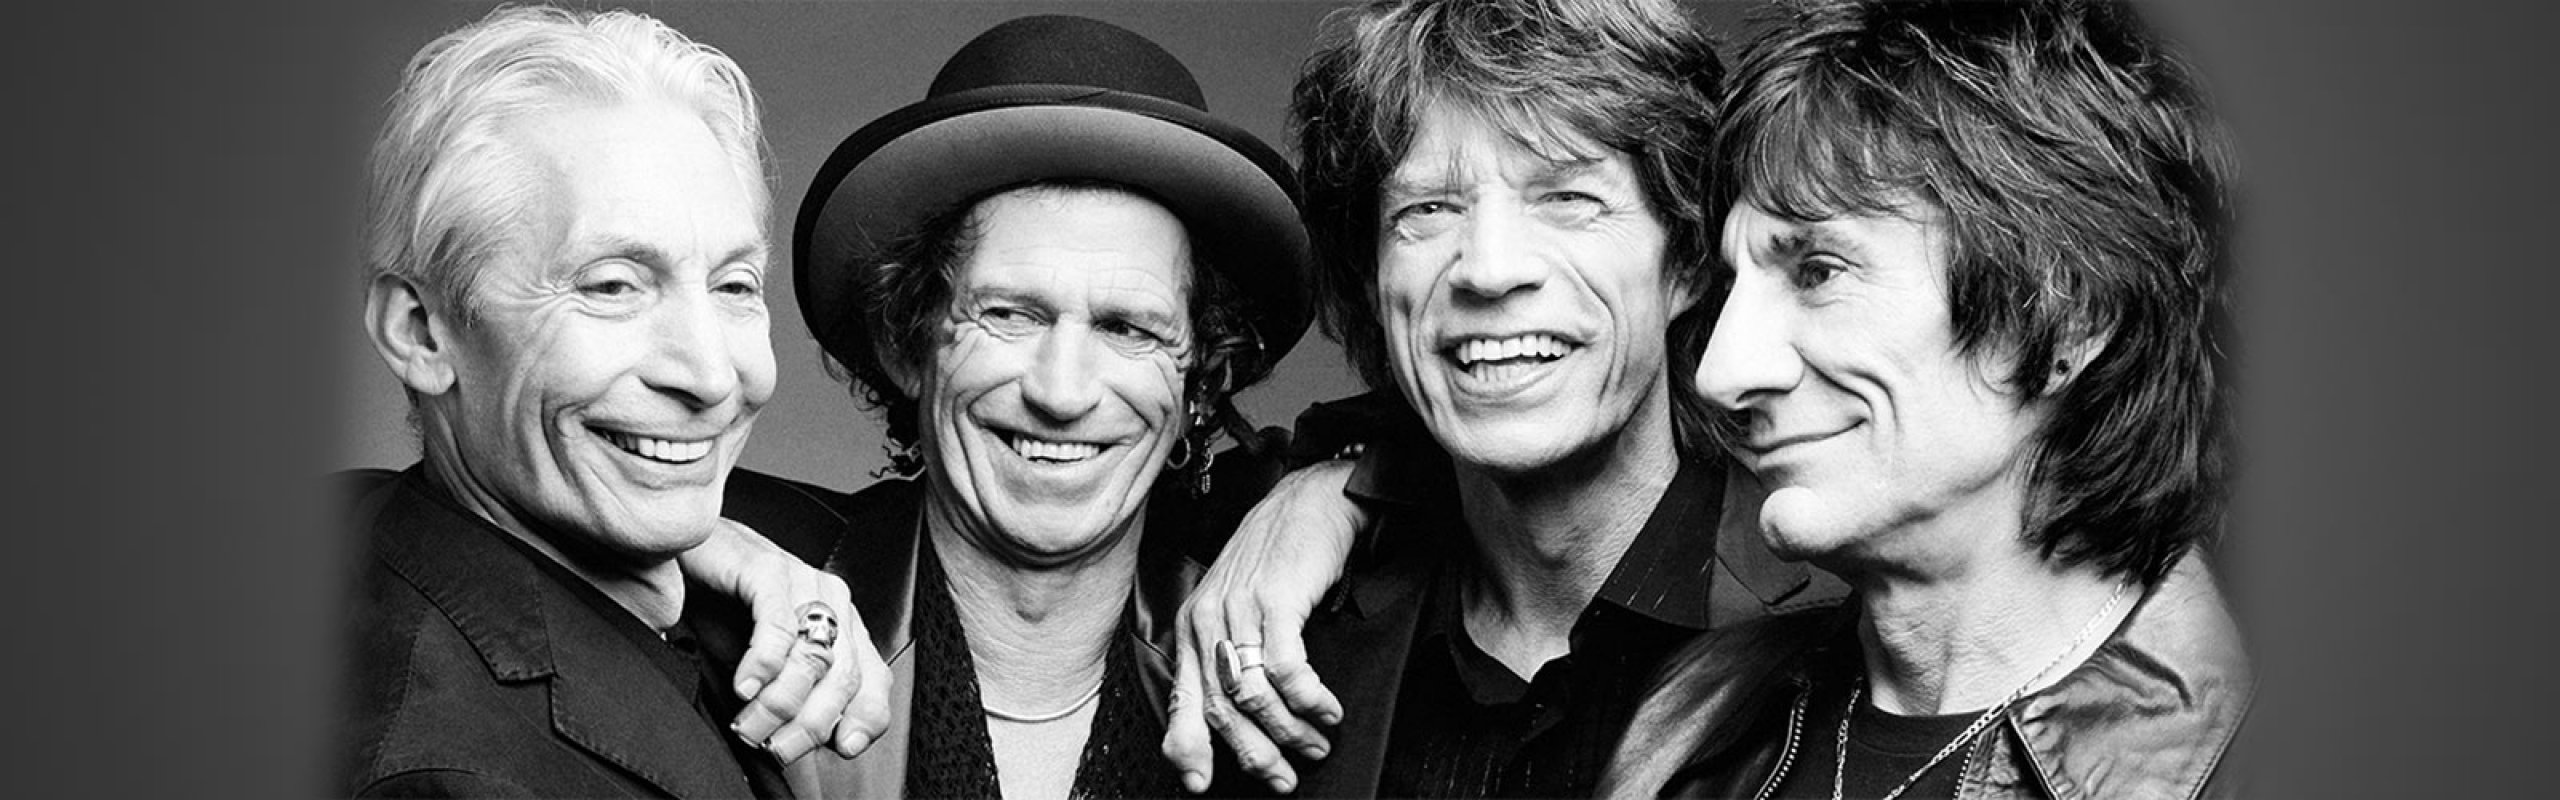 Rock and roll diplomacy: how American music influenced the Rolling Stones, and how the Stones changed America